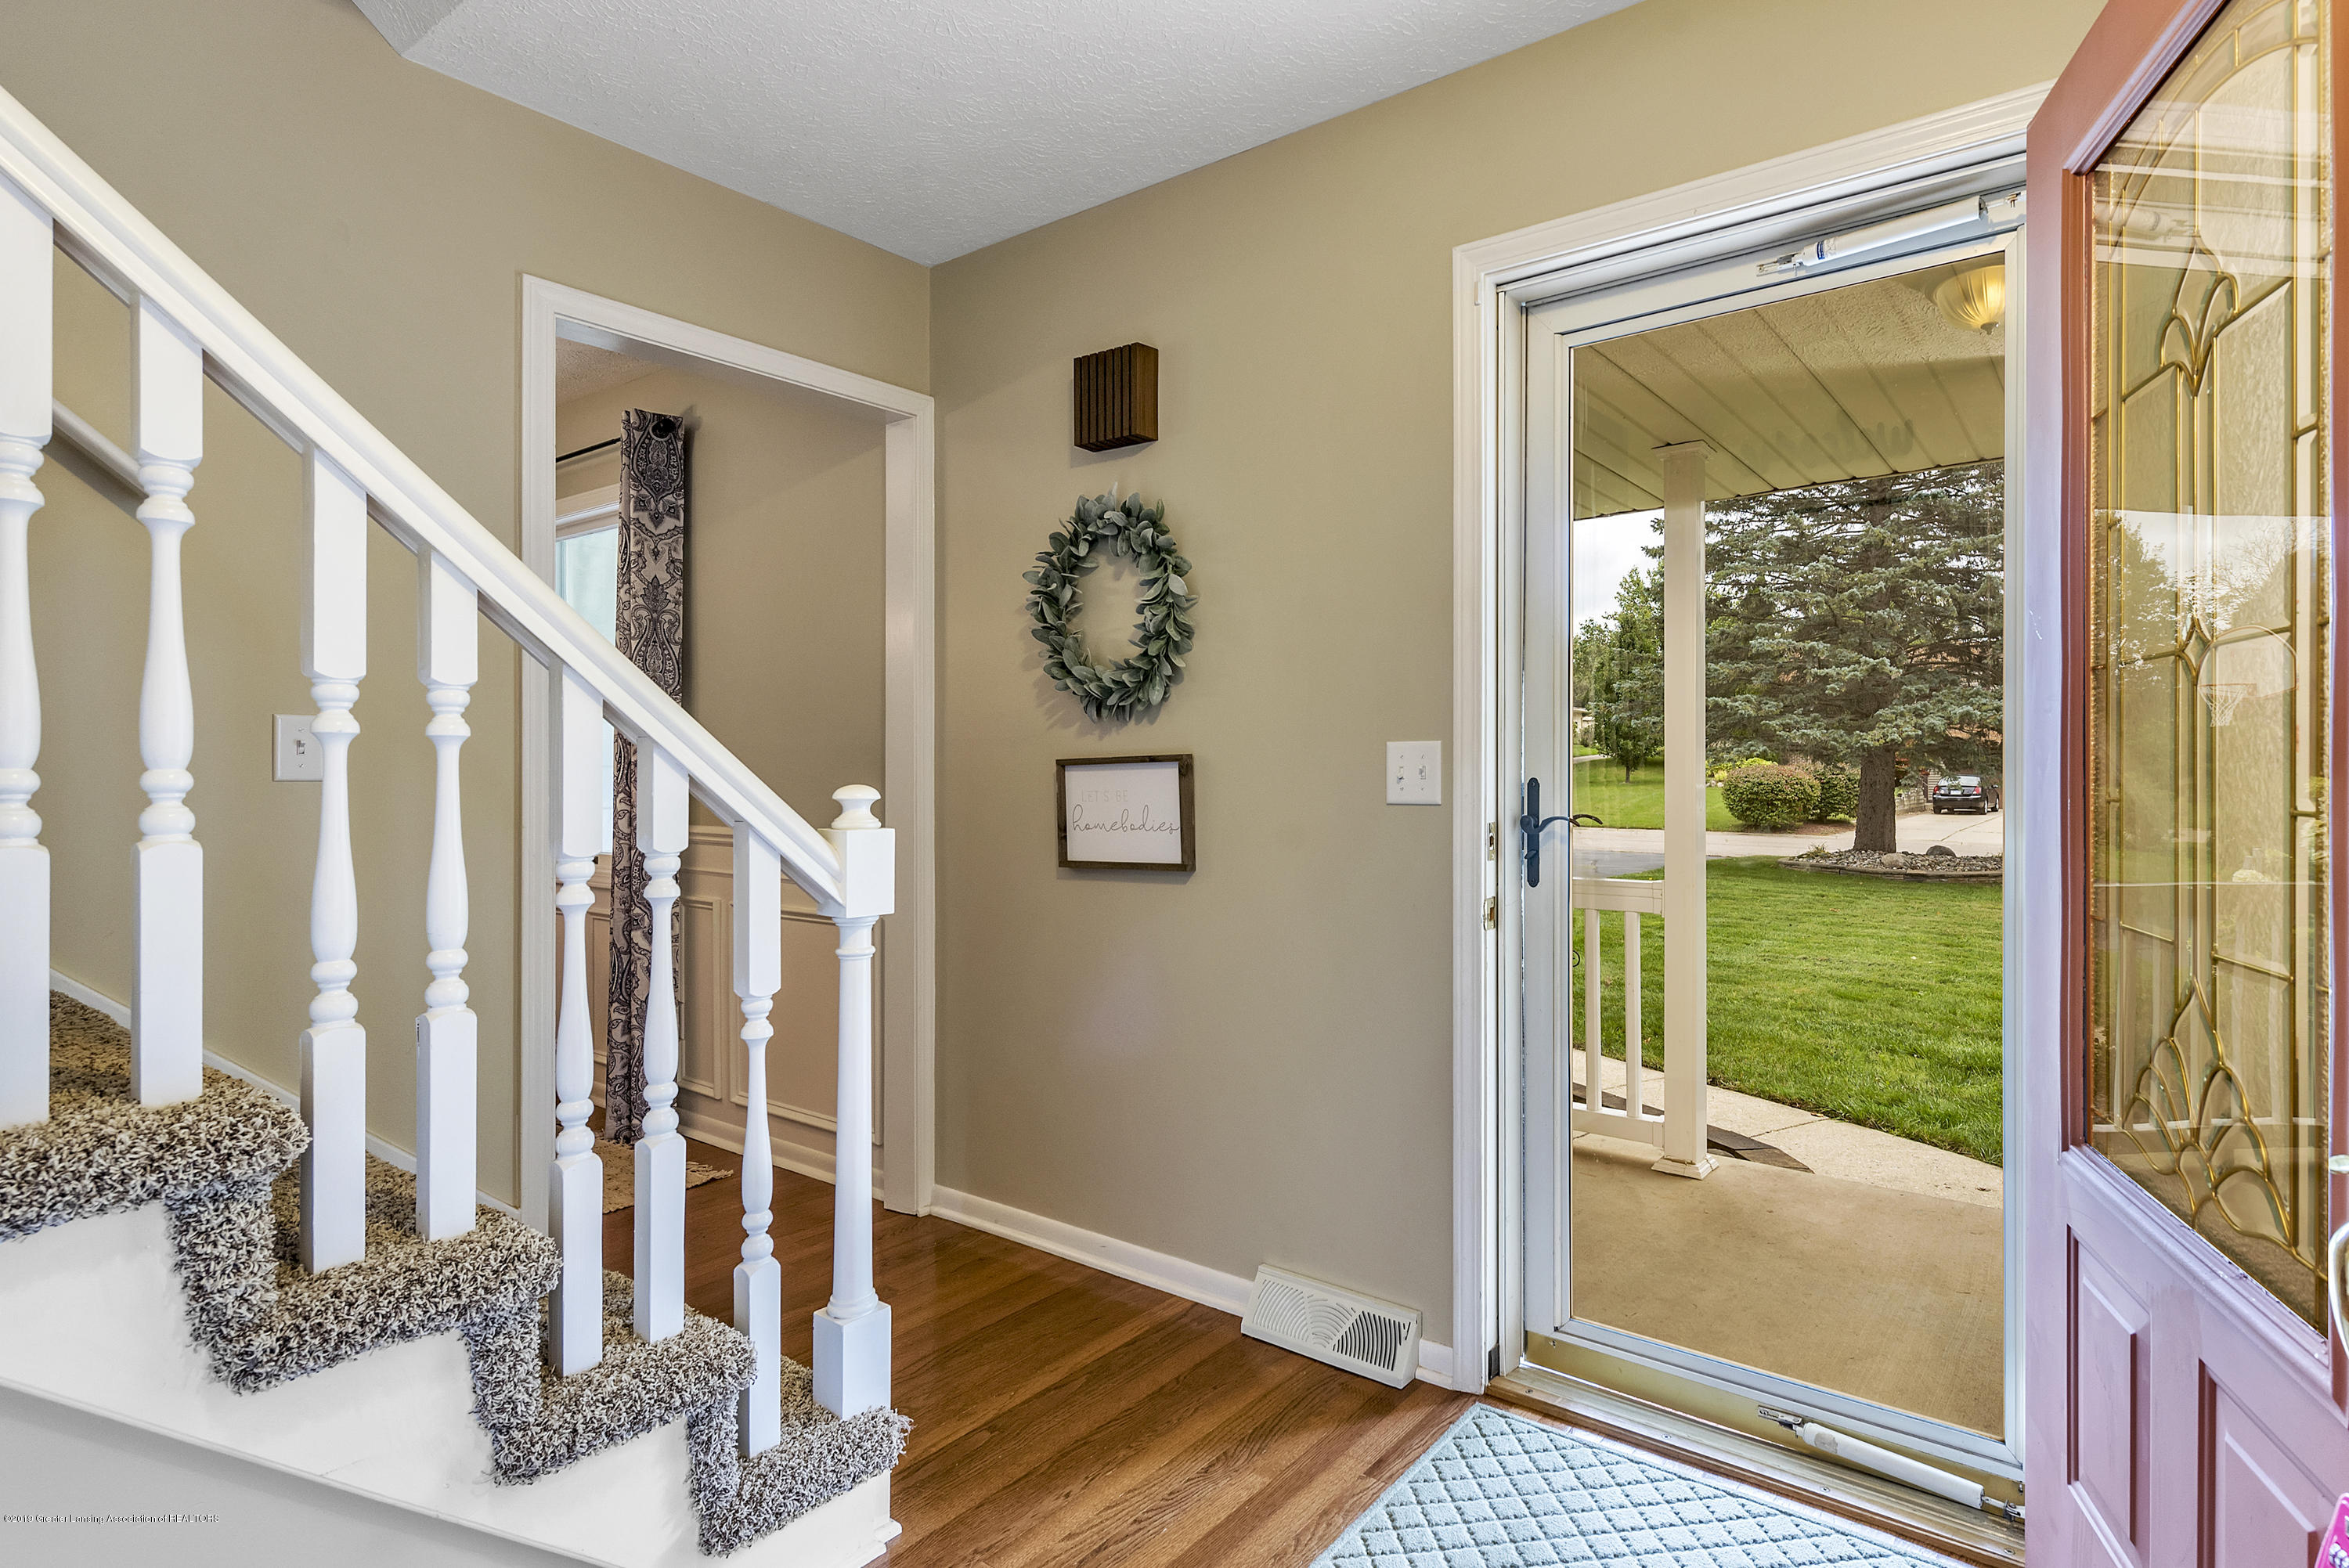 6491 Lansdown Dr - 6491-Lansdown-Dimondale-WindowStill-Real - 3